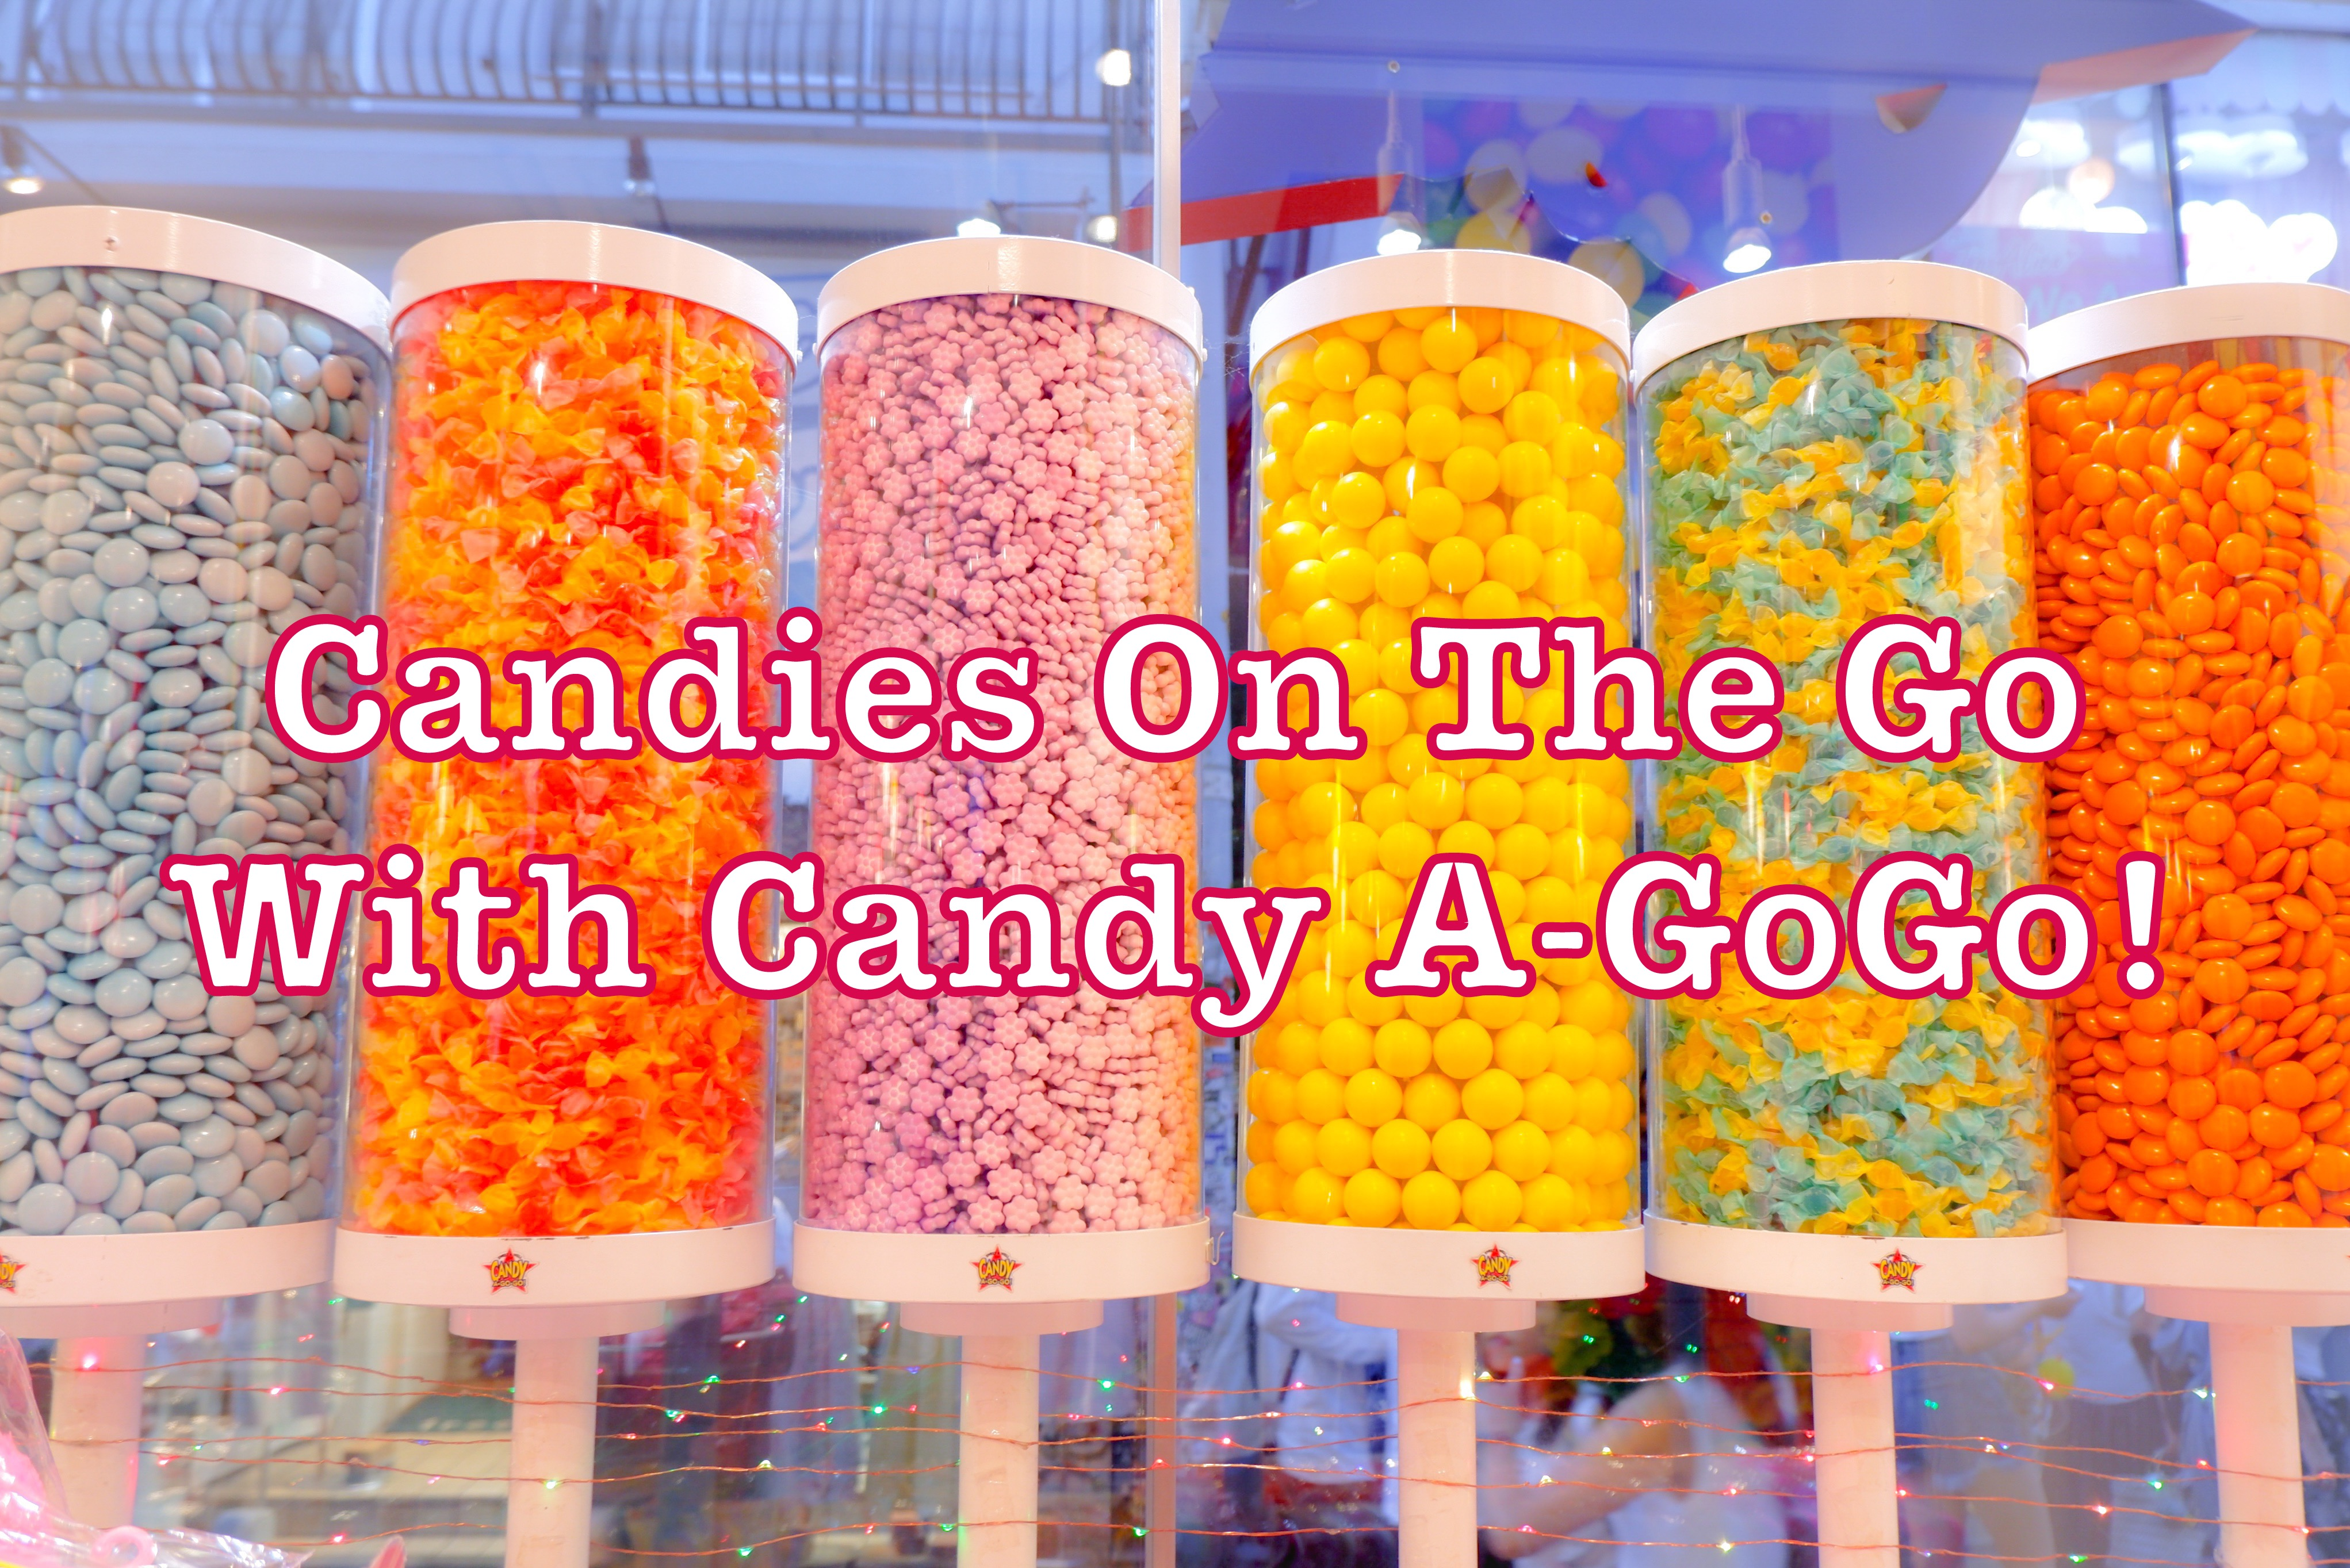 Candies On The Go With Candy A-GoGo!